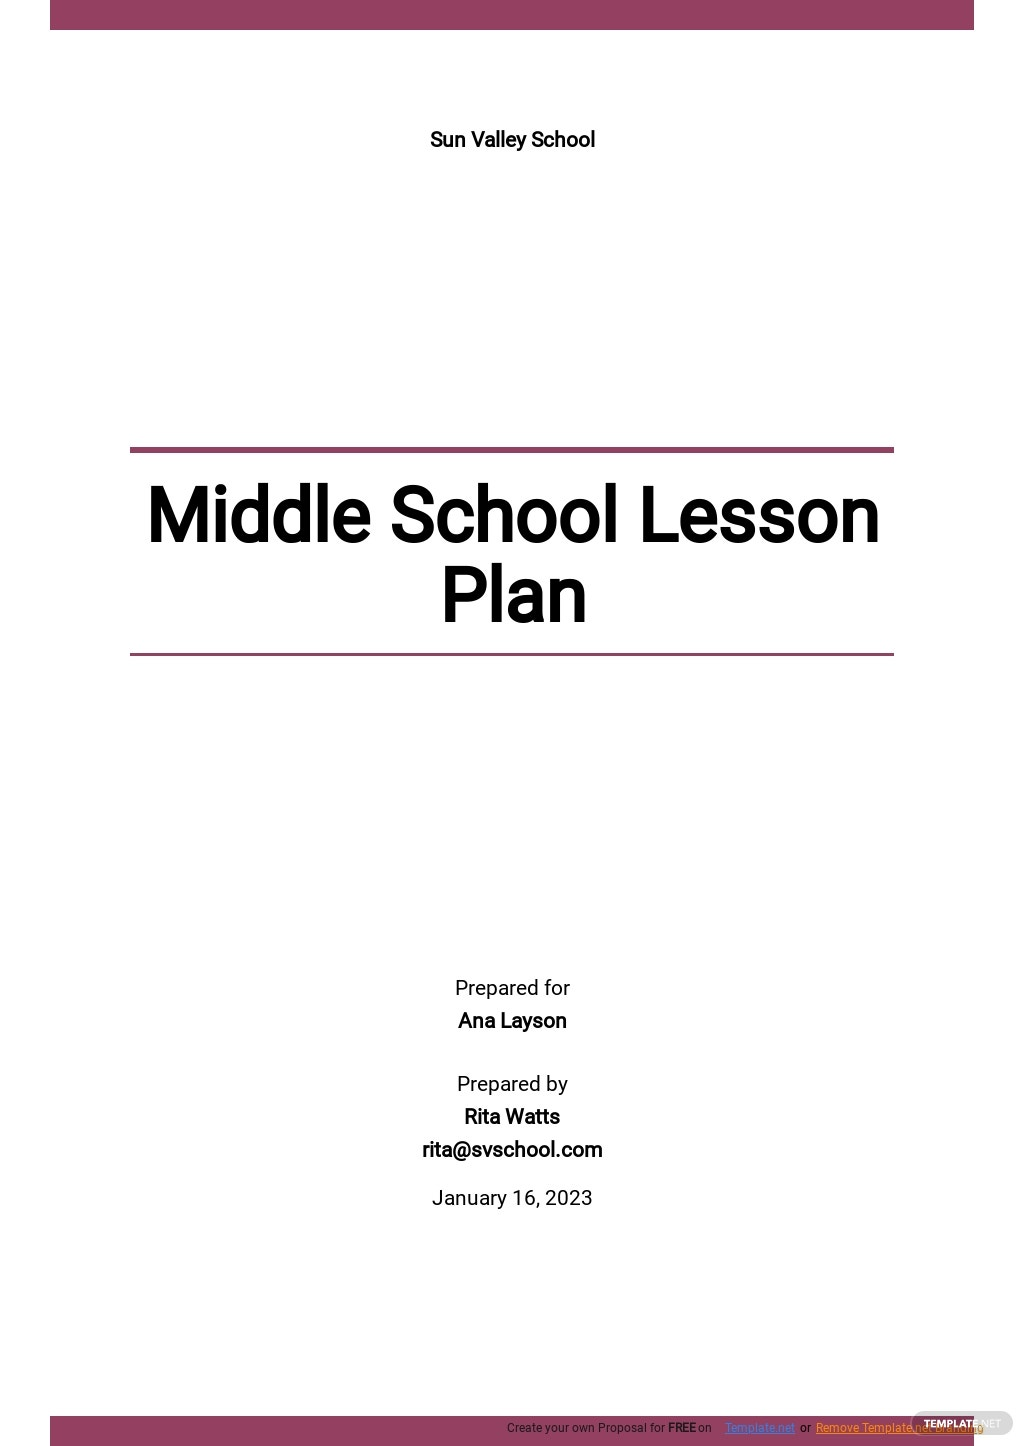 Middle School Lesson Plan Template.jpe